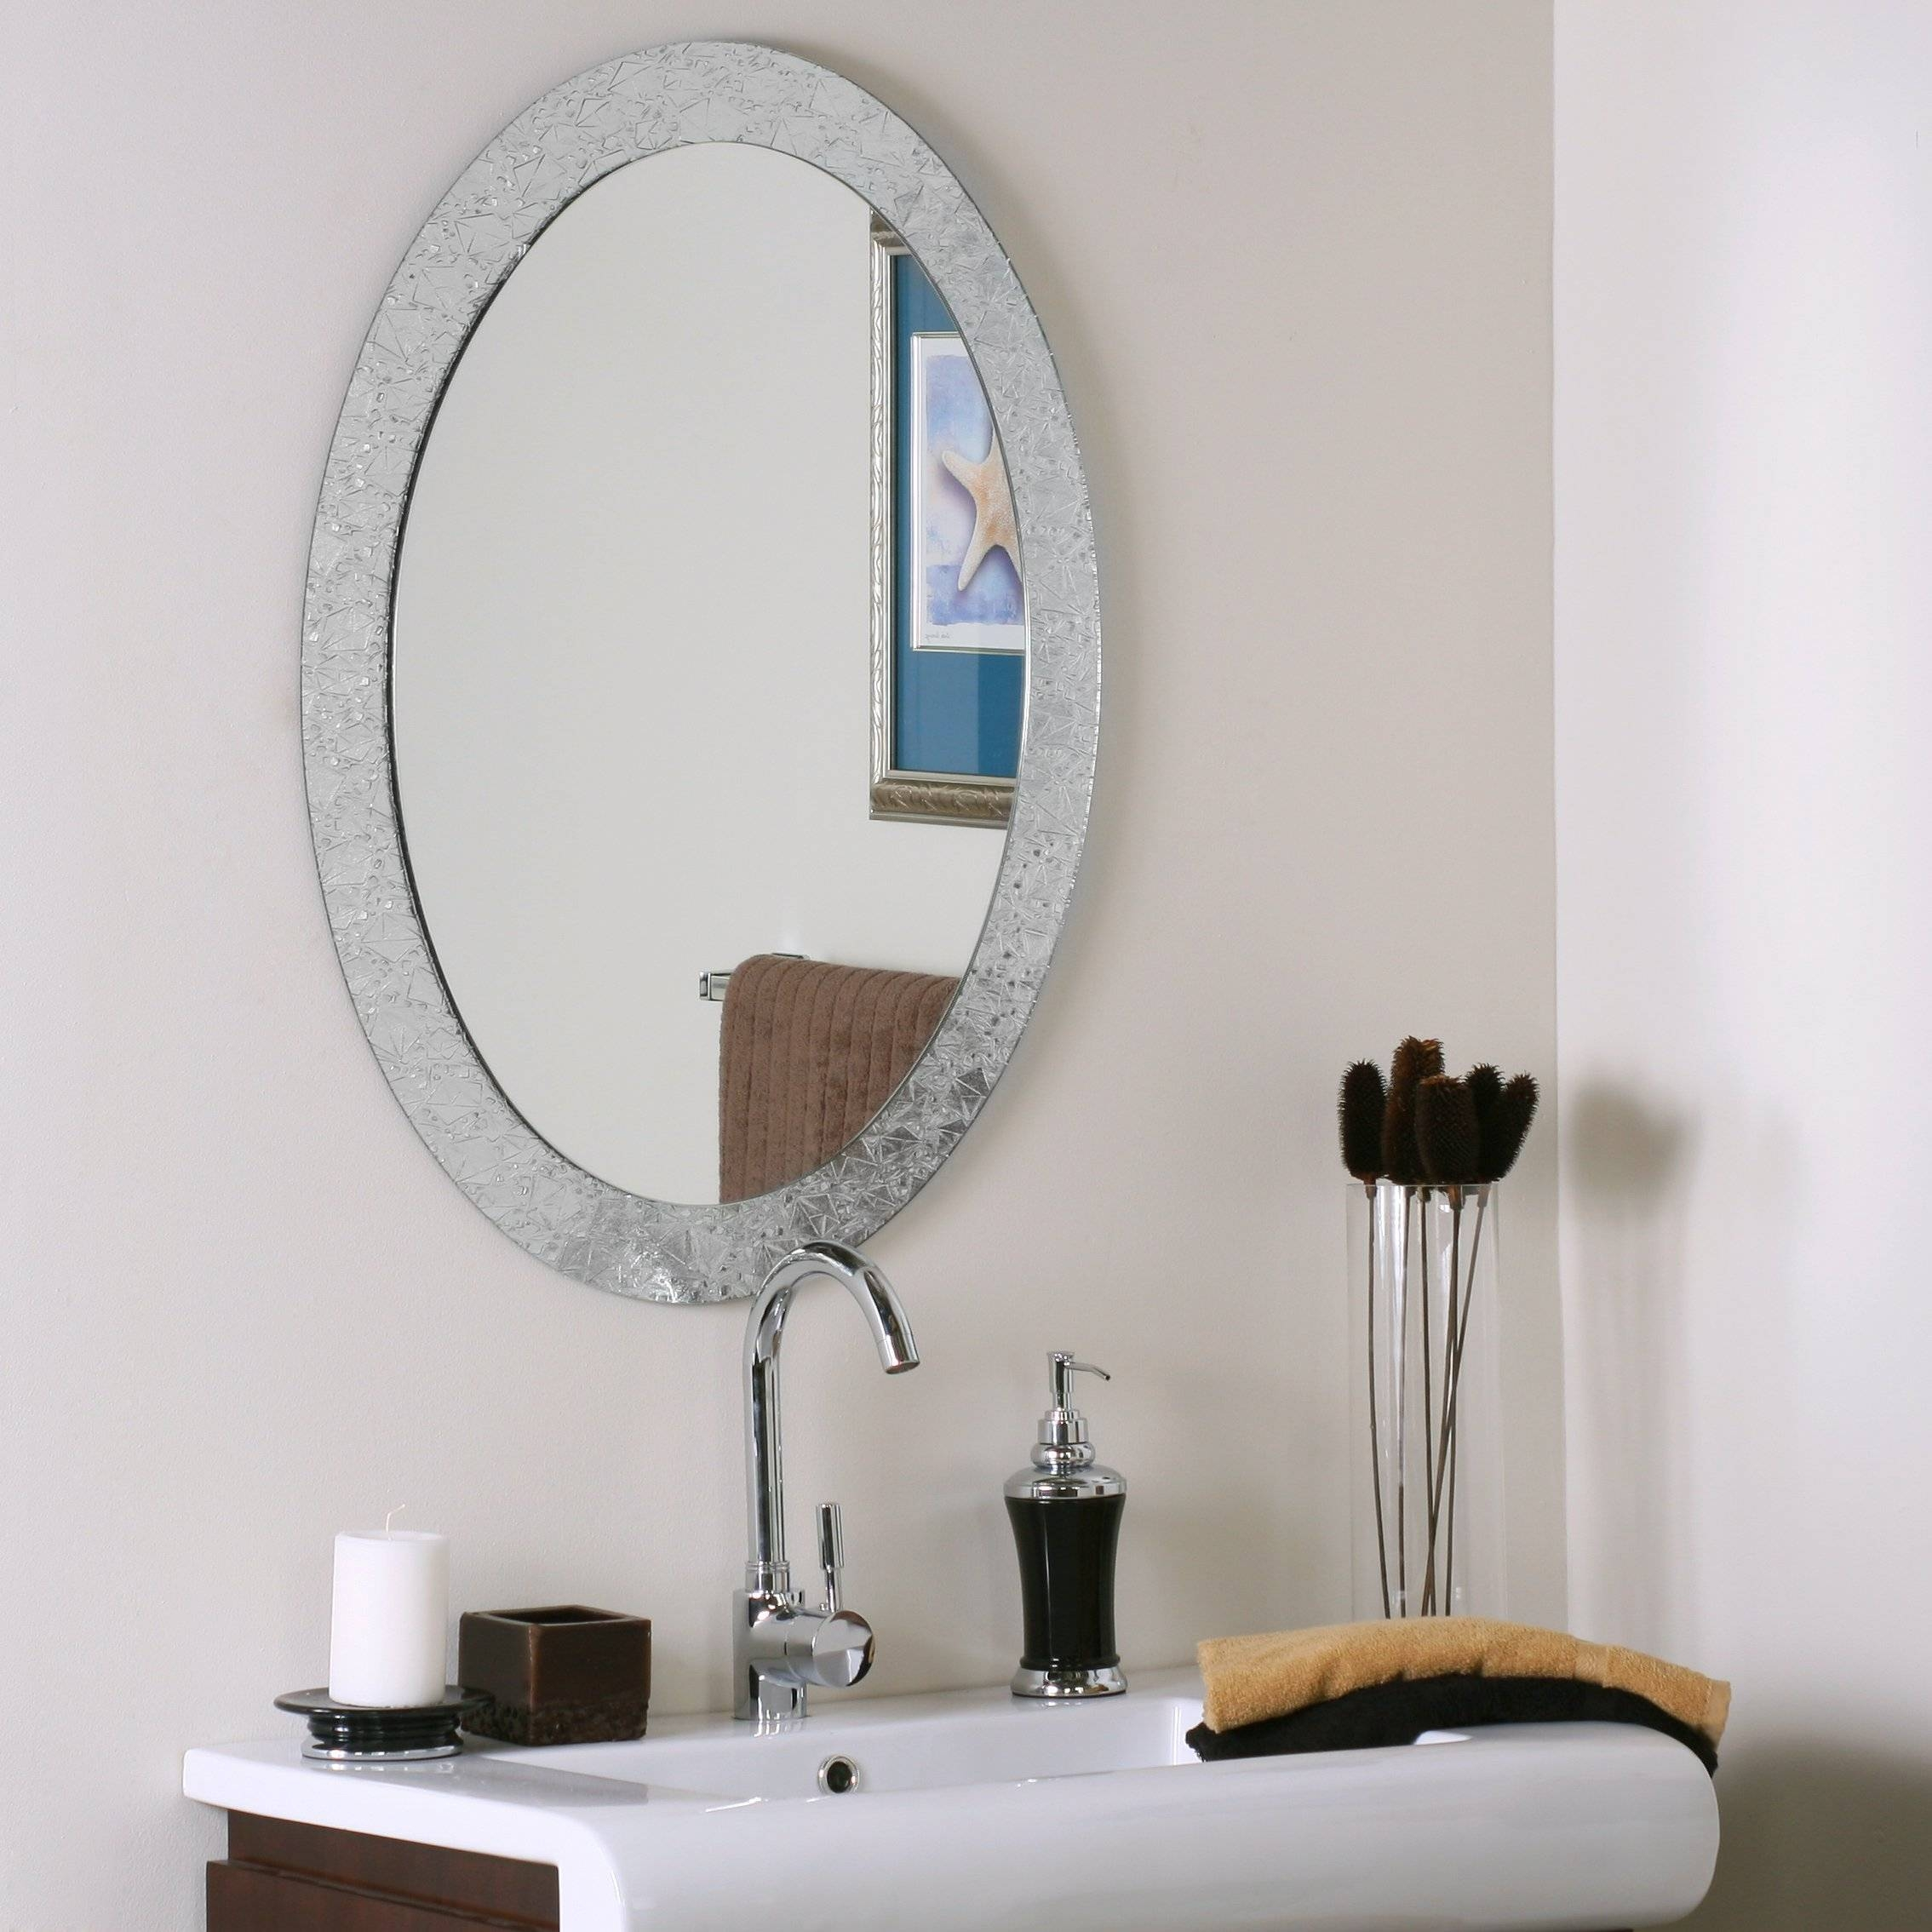 Bathroom Decorative Mirrors for Small Decorative Mirrors (Image 1 of 25)